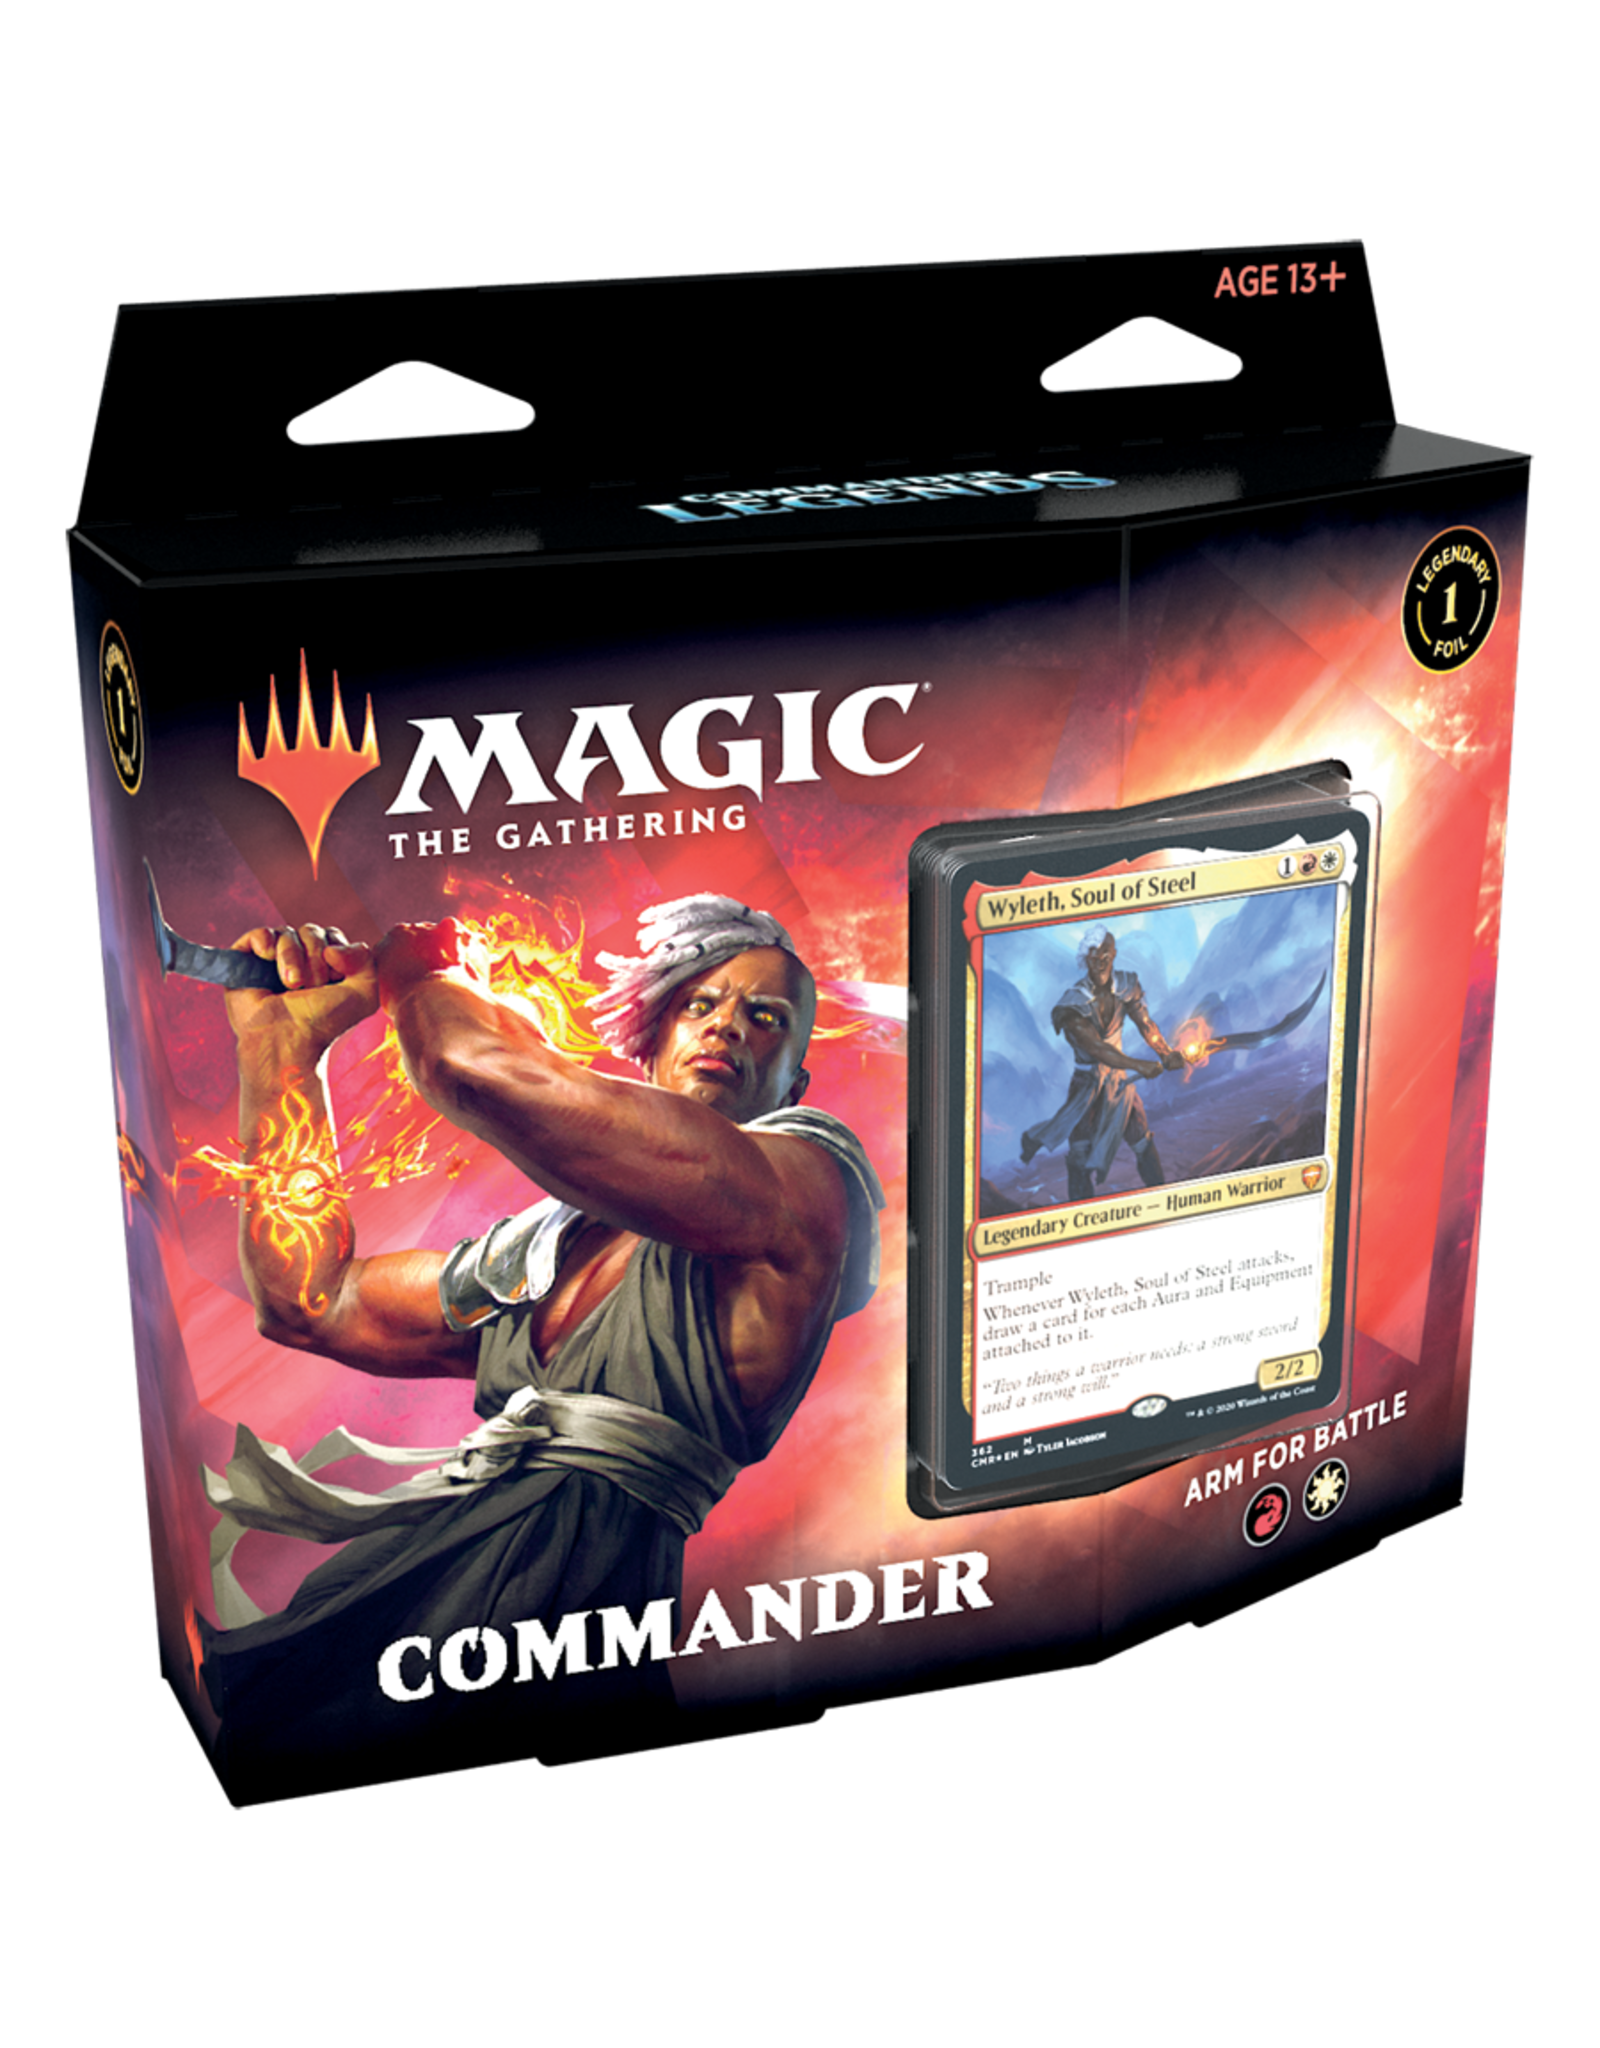 Wizards of the Coast MTG COMMANDER LEGENDS DECK - Arm for Battle